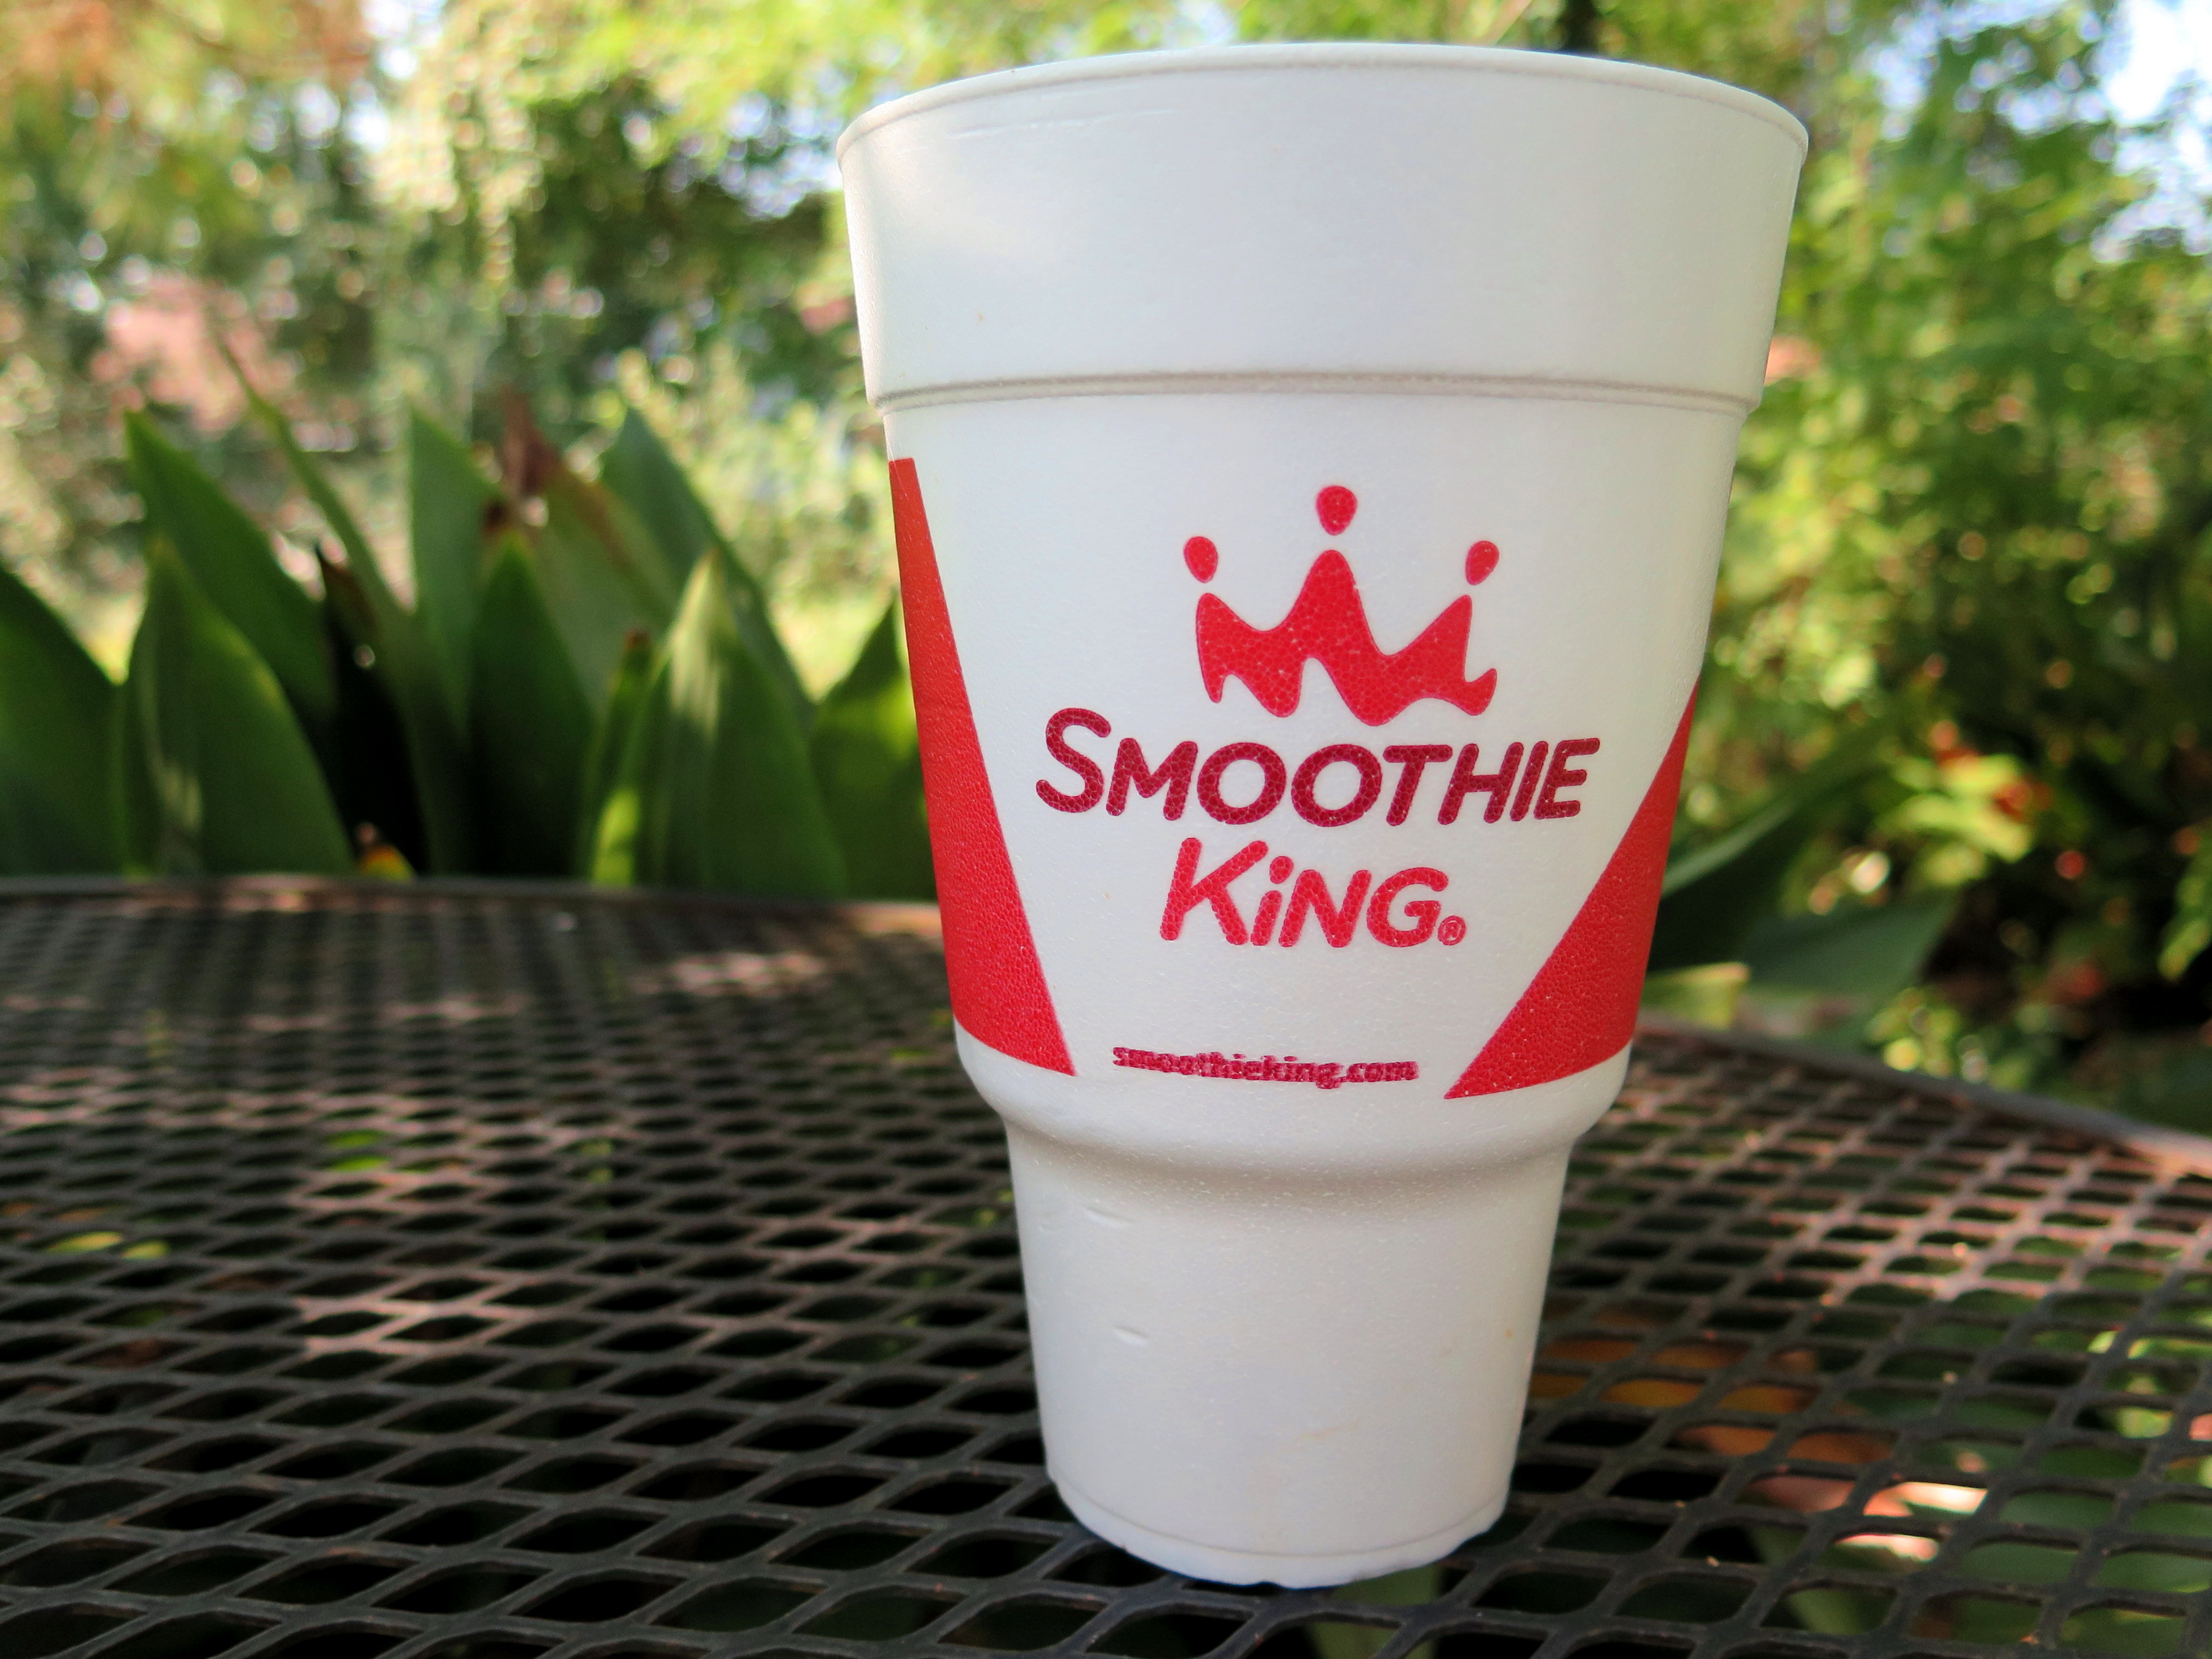 Healthy Smoothies At Smoothie King  Summer Coffee and Fruit Yogurt Smoothies